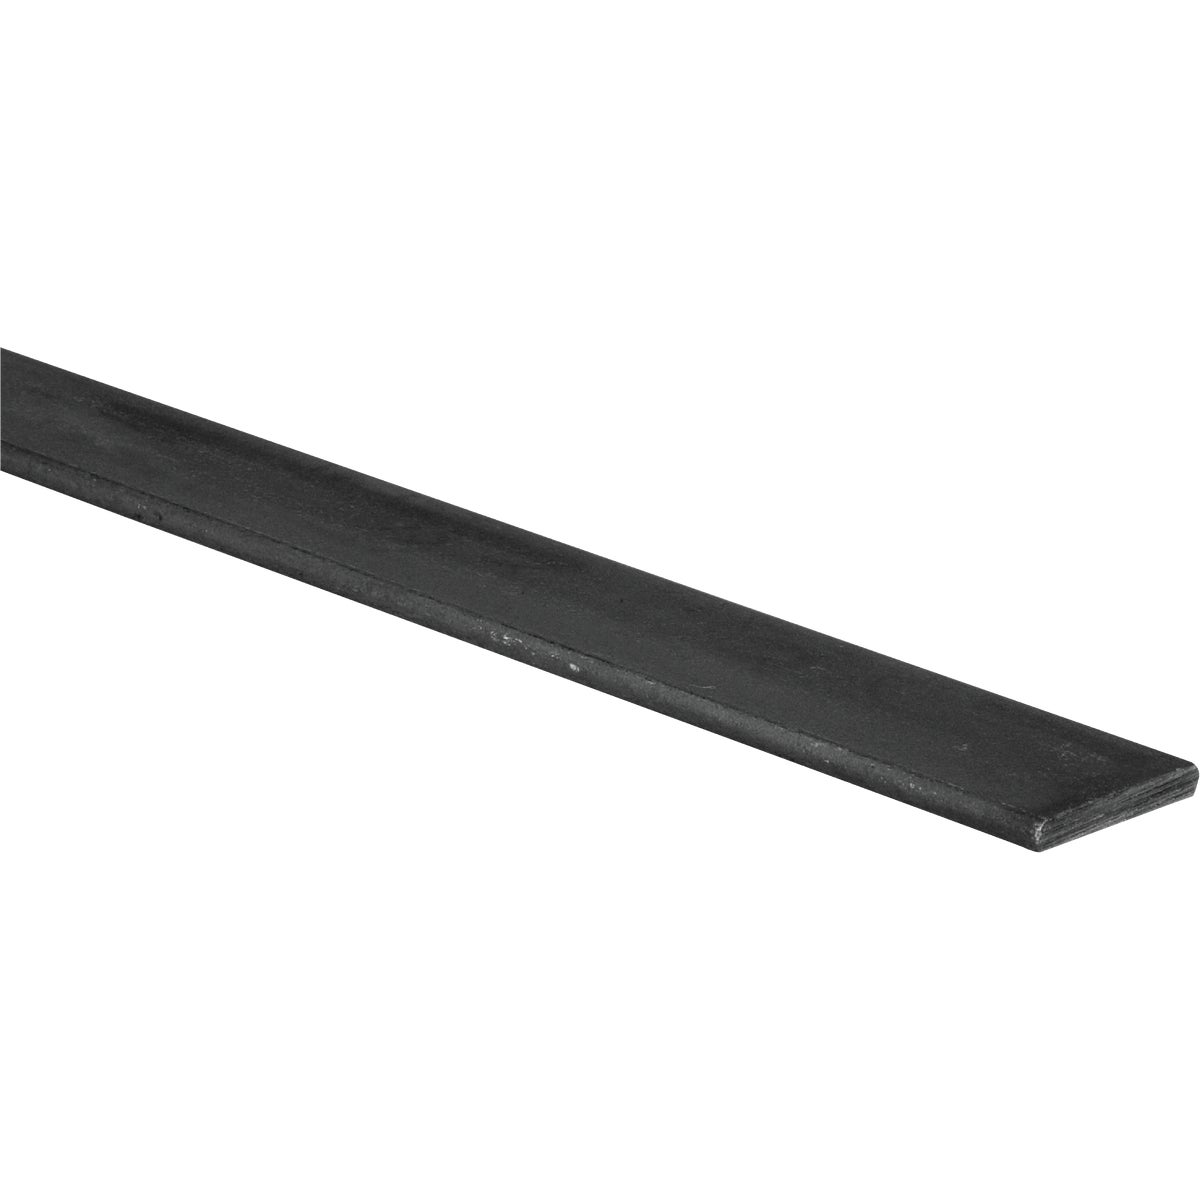 1/8X1-1/4X36 HR FLAT BAR - N346700 by National Mfg Co